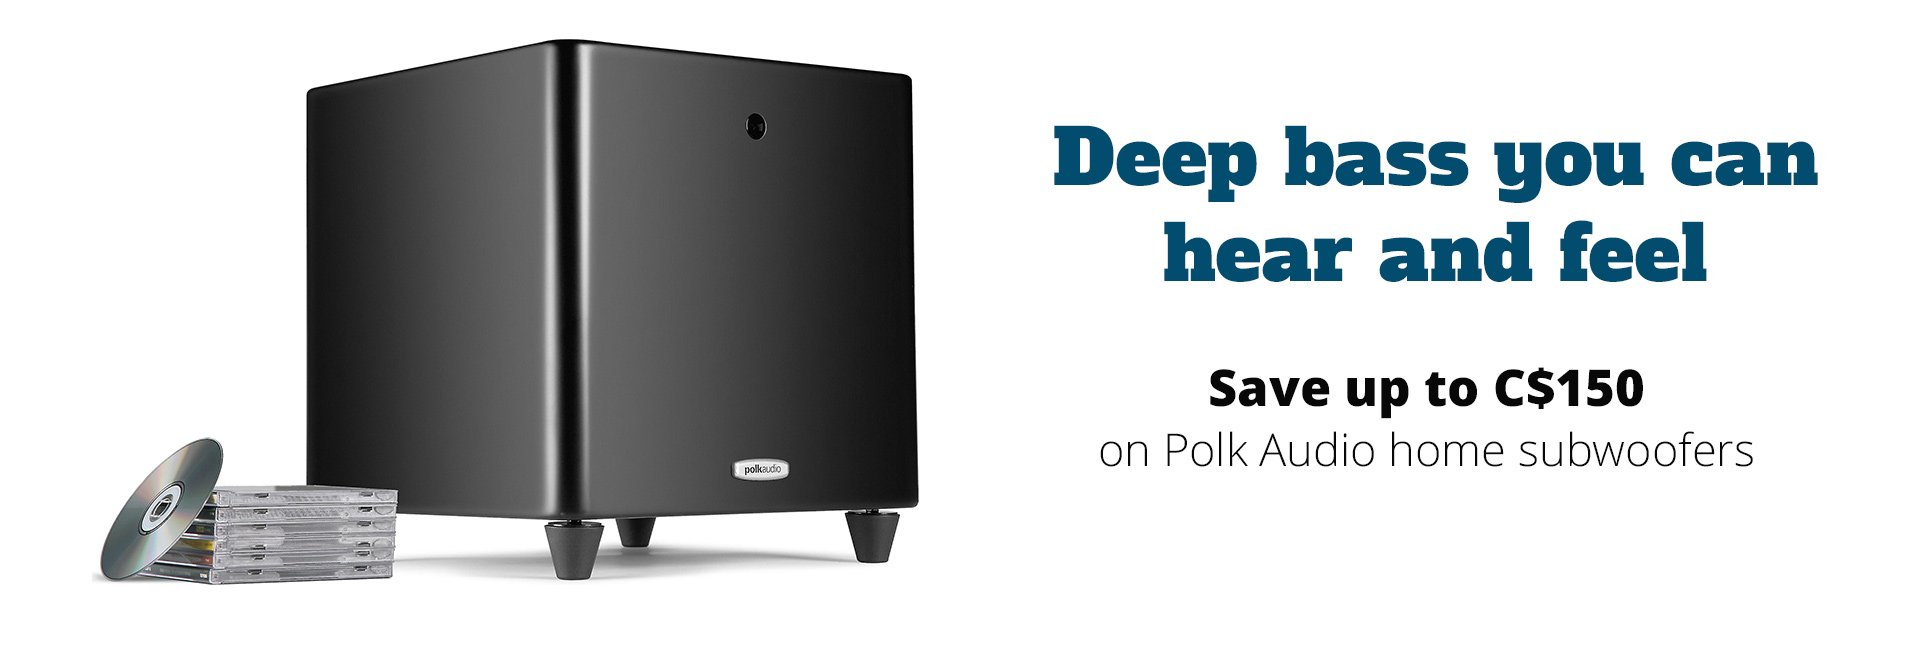 Save up to C$150 on Polk Audio home subwoofers